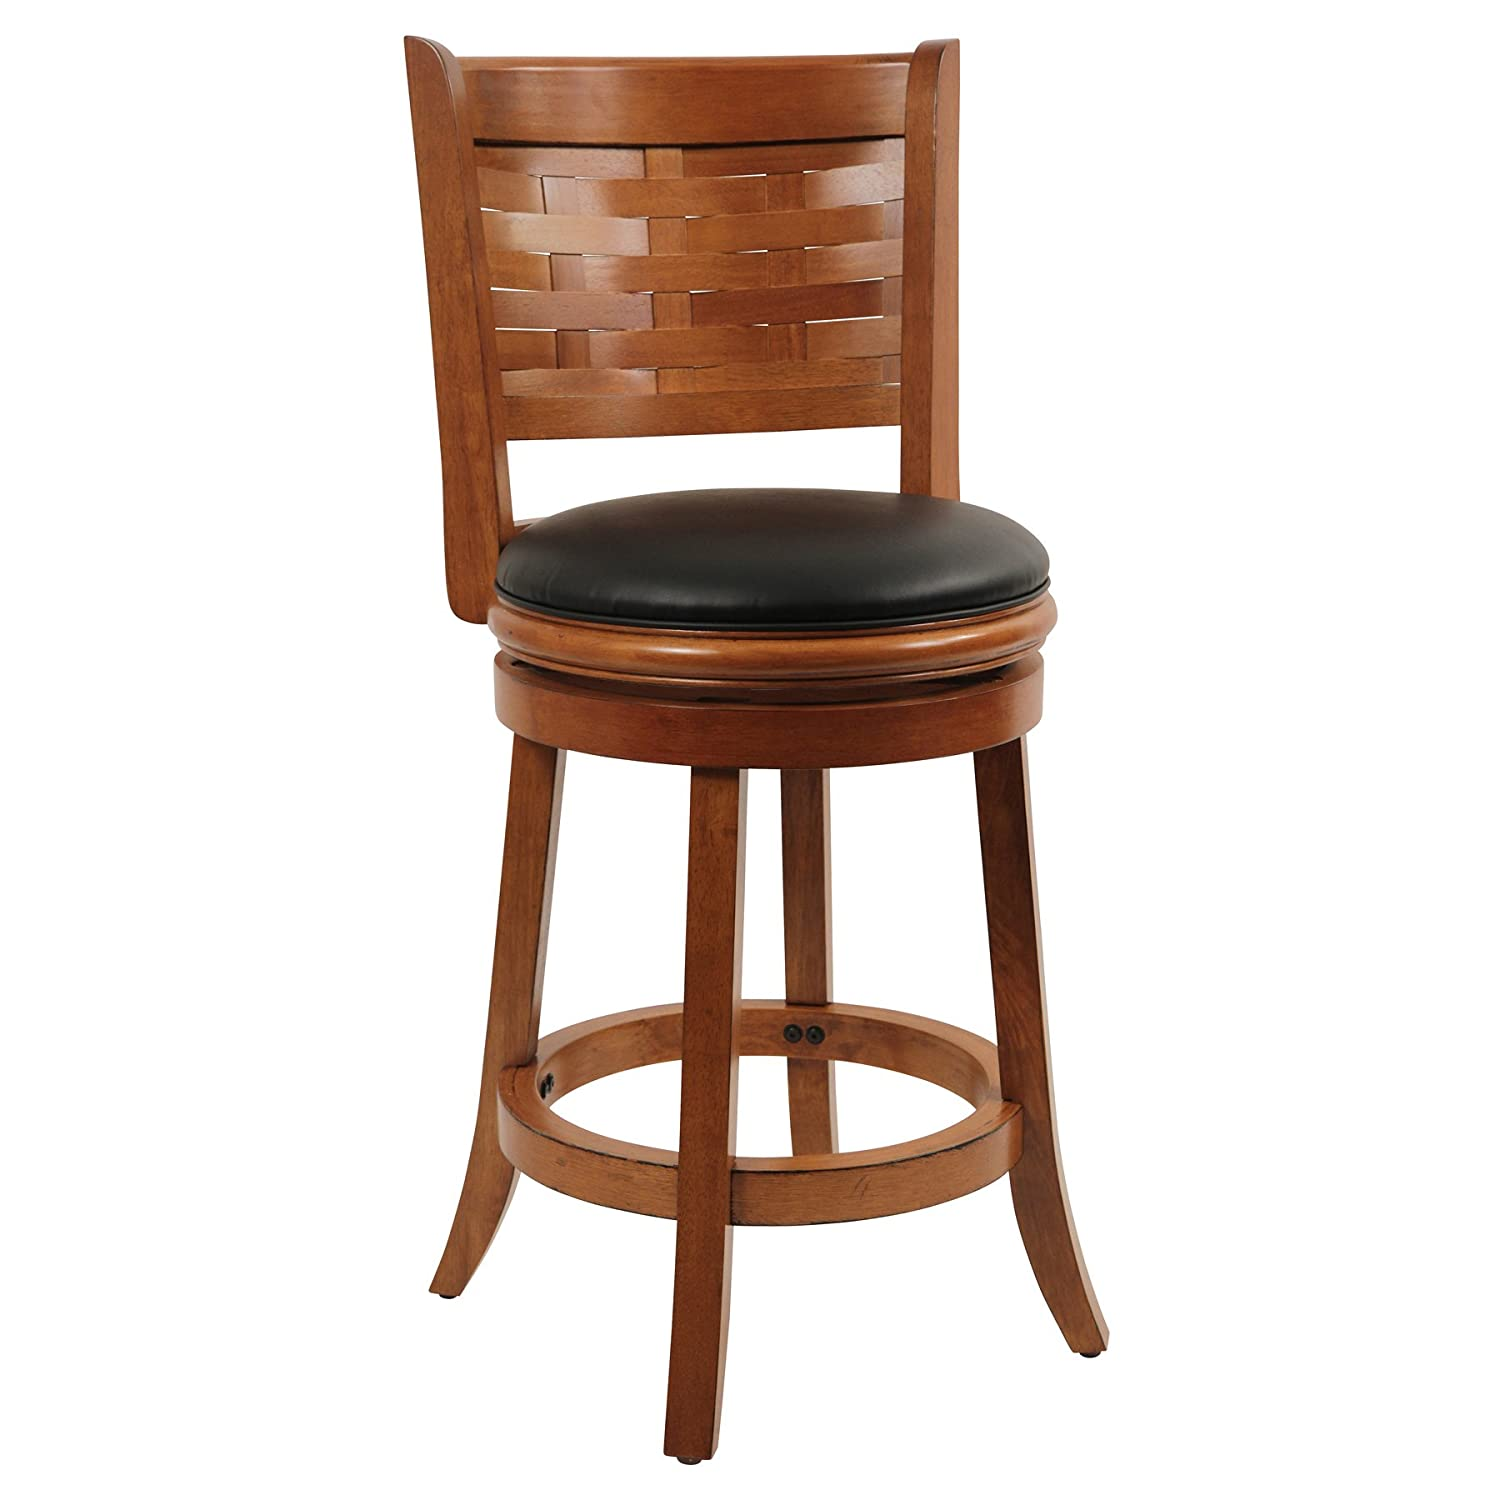 Amazon.com Boraam 41024 Sumatra Swivel Stool 24-Inch Distressed Oak Kitchen u0026 Dining  sc 1 st  Amazon.com & Amazon.com: Boraam 41024 Sumatra Swivel Stool 24-Inch Distressed ... islam-shia.org